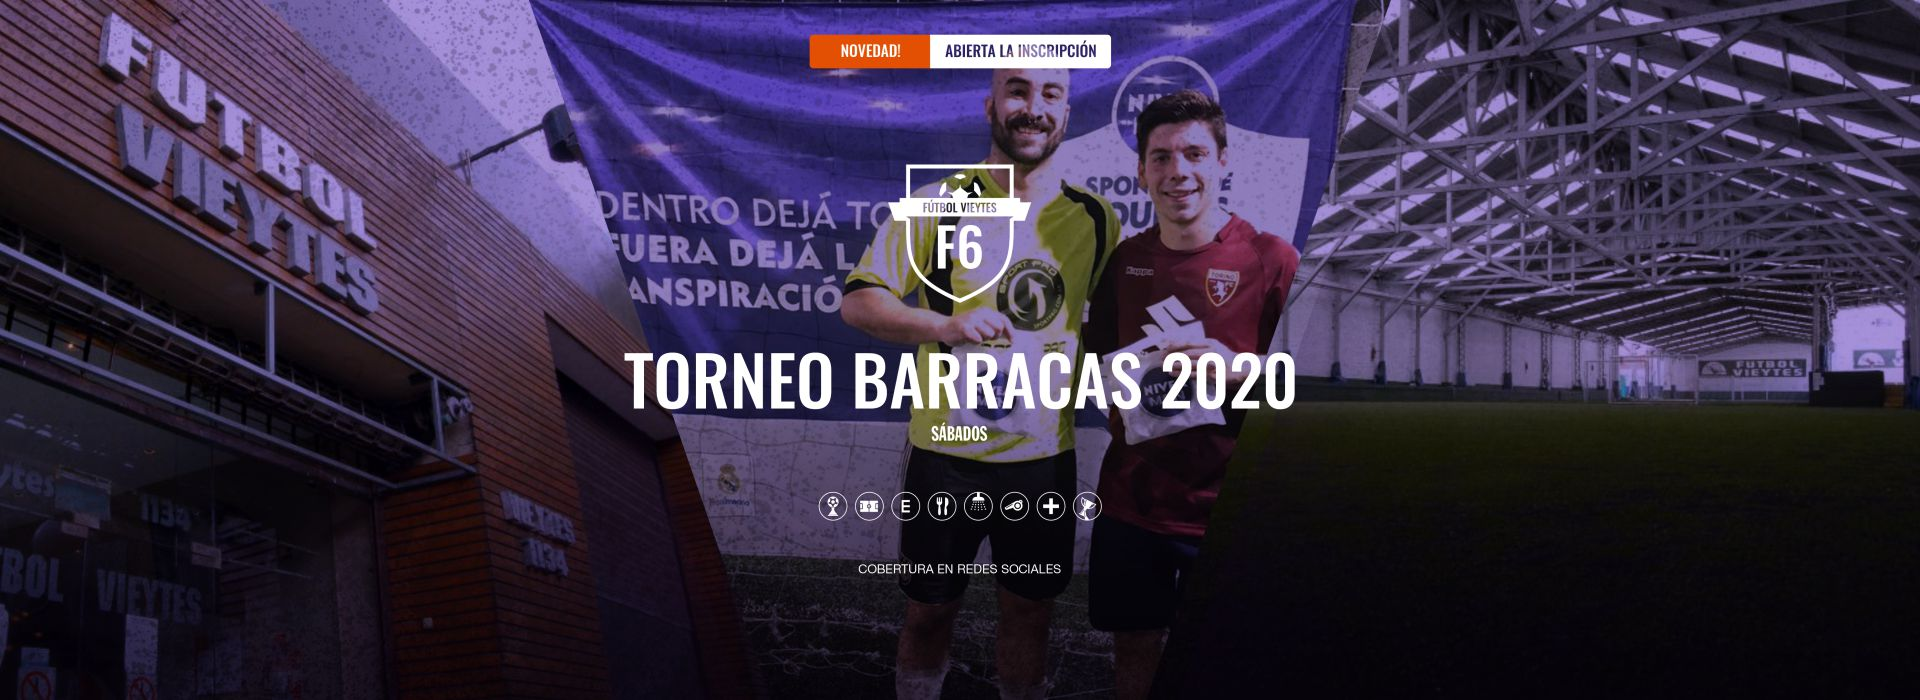 F6 Torneo Barracas 2020